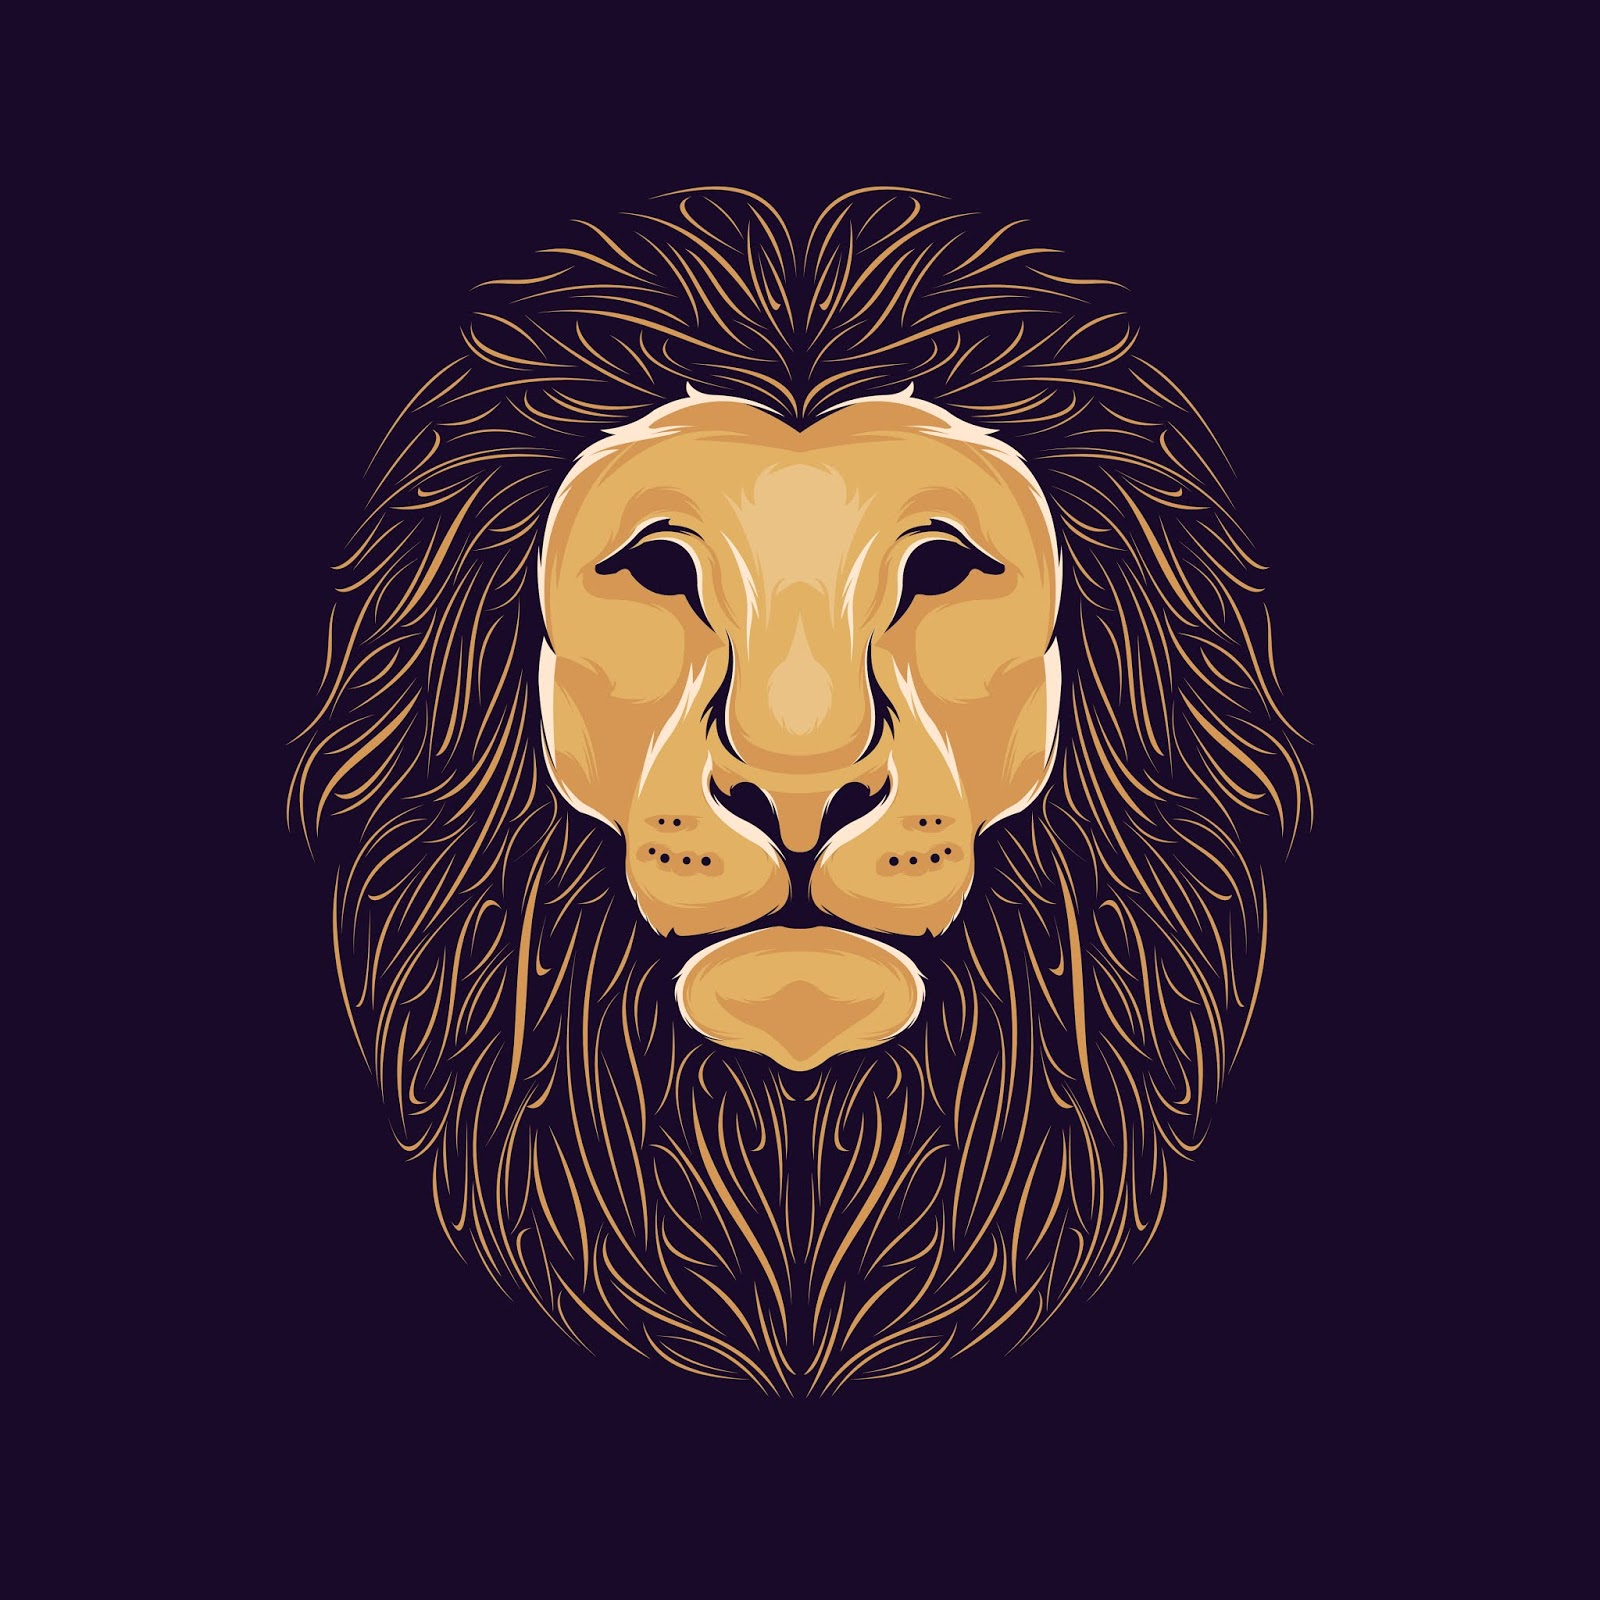 Lion Head Illustration Funny Free Download Vector CDR, AI, EPS and PNG Formats